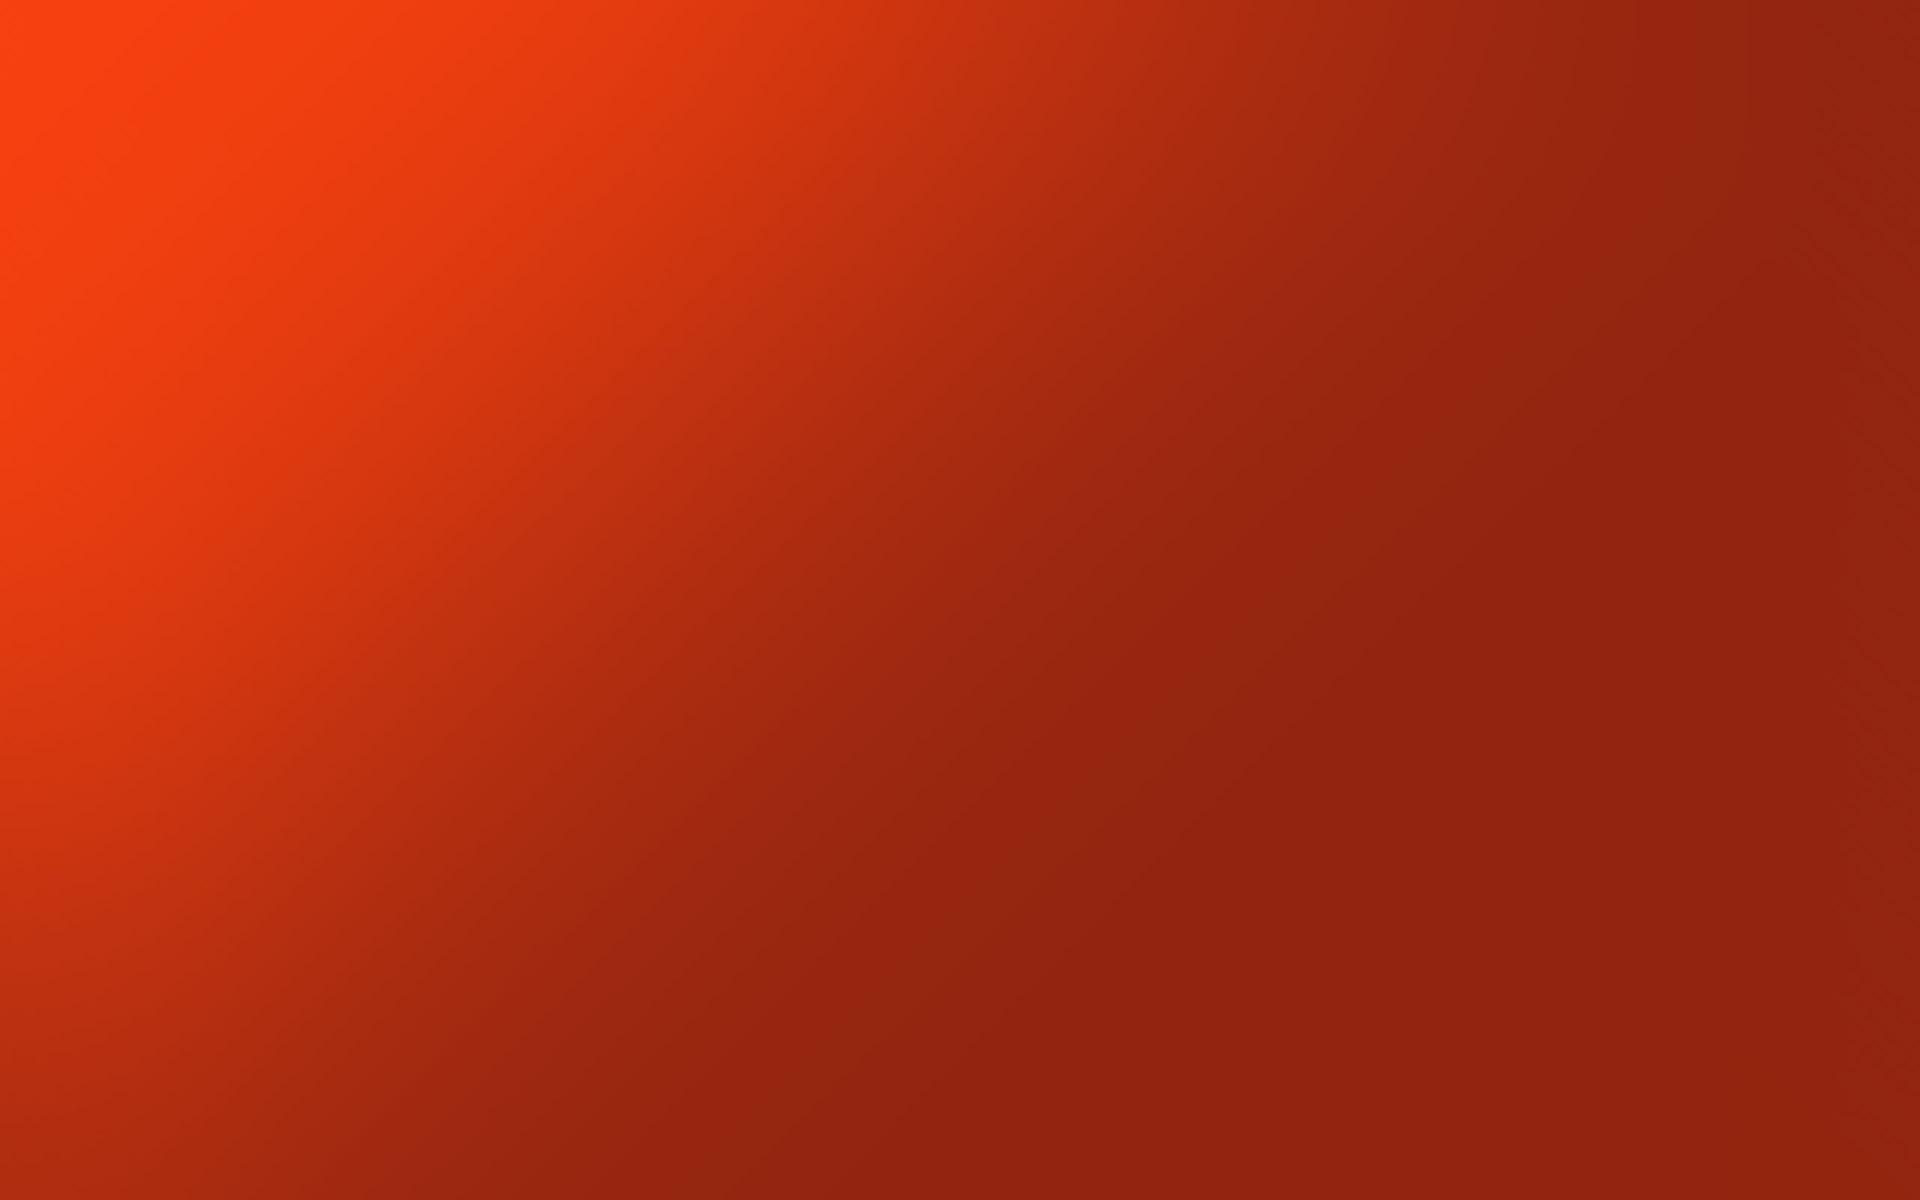 Wallpaper Minimalistas Color Rojo Wallpapers